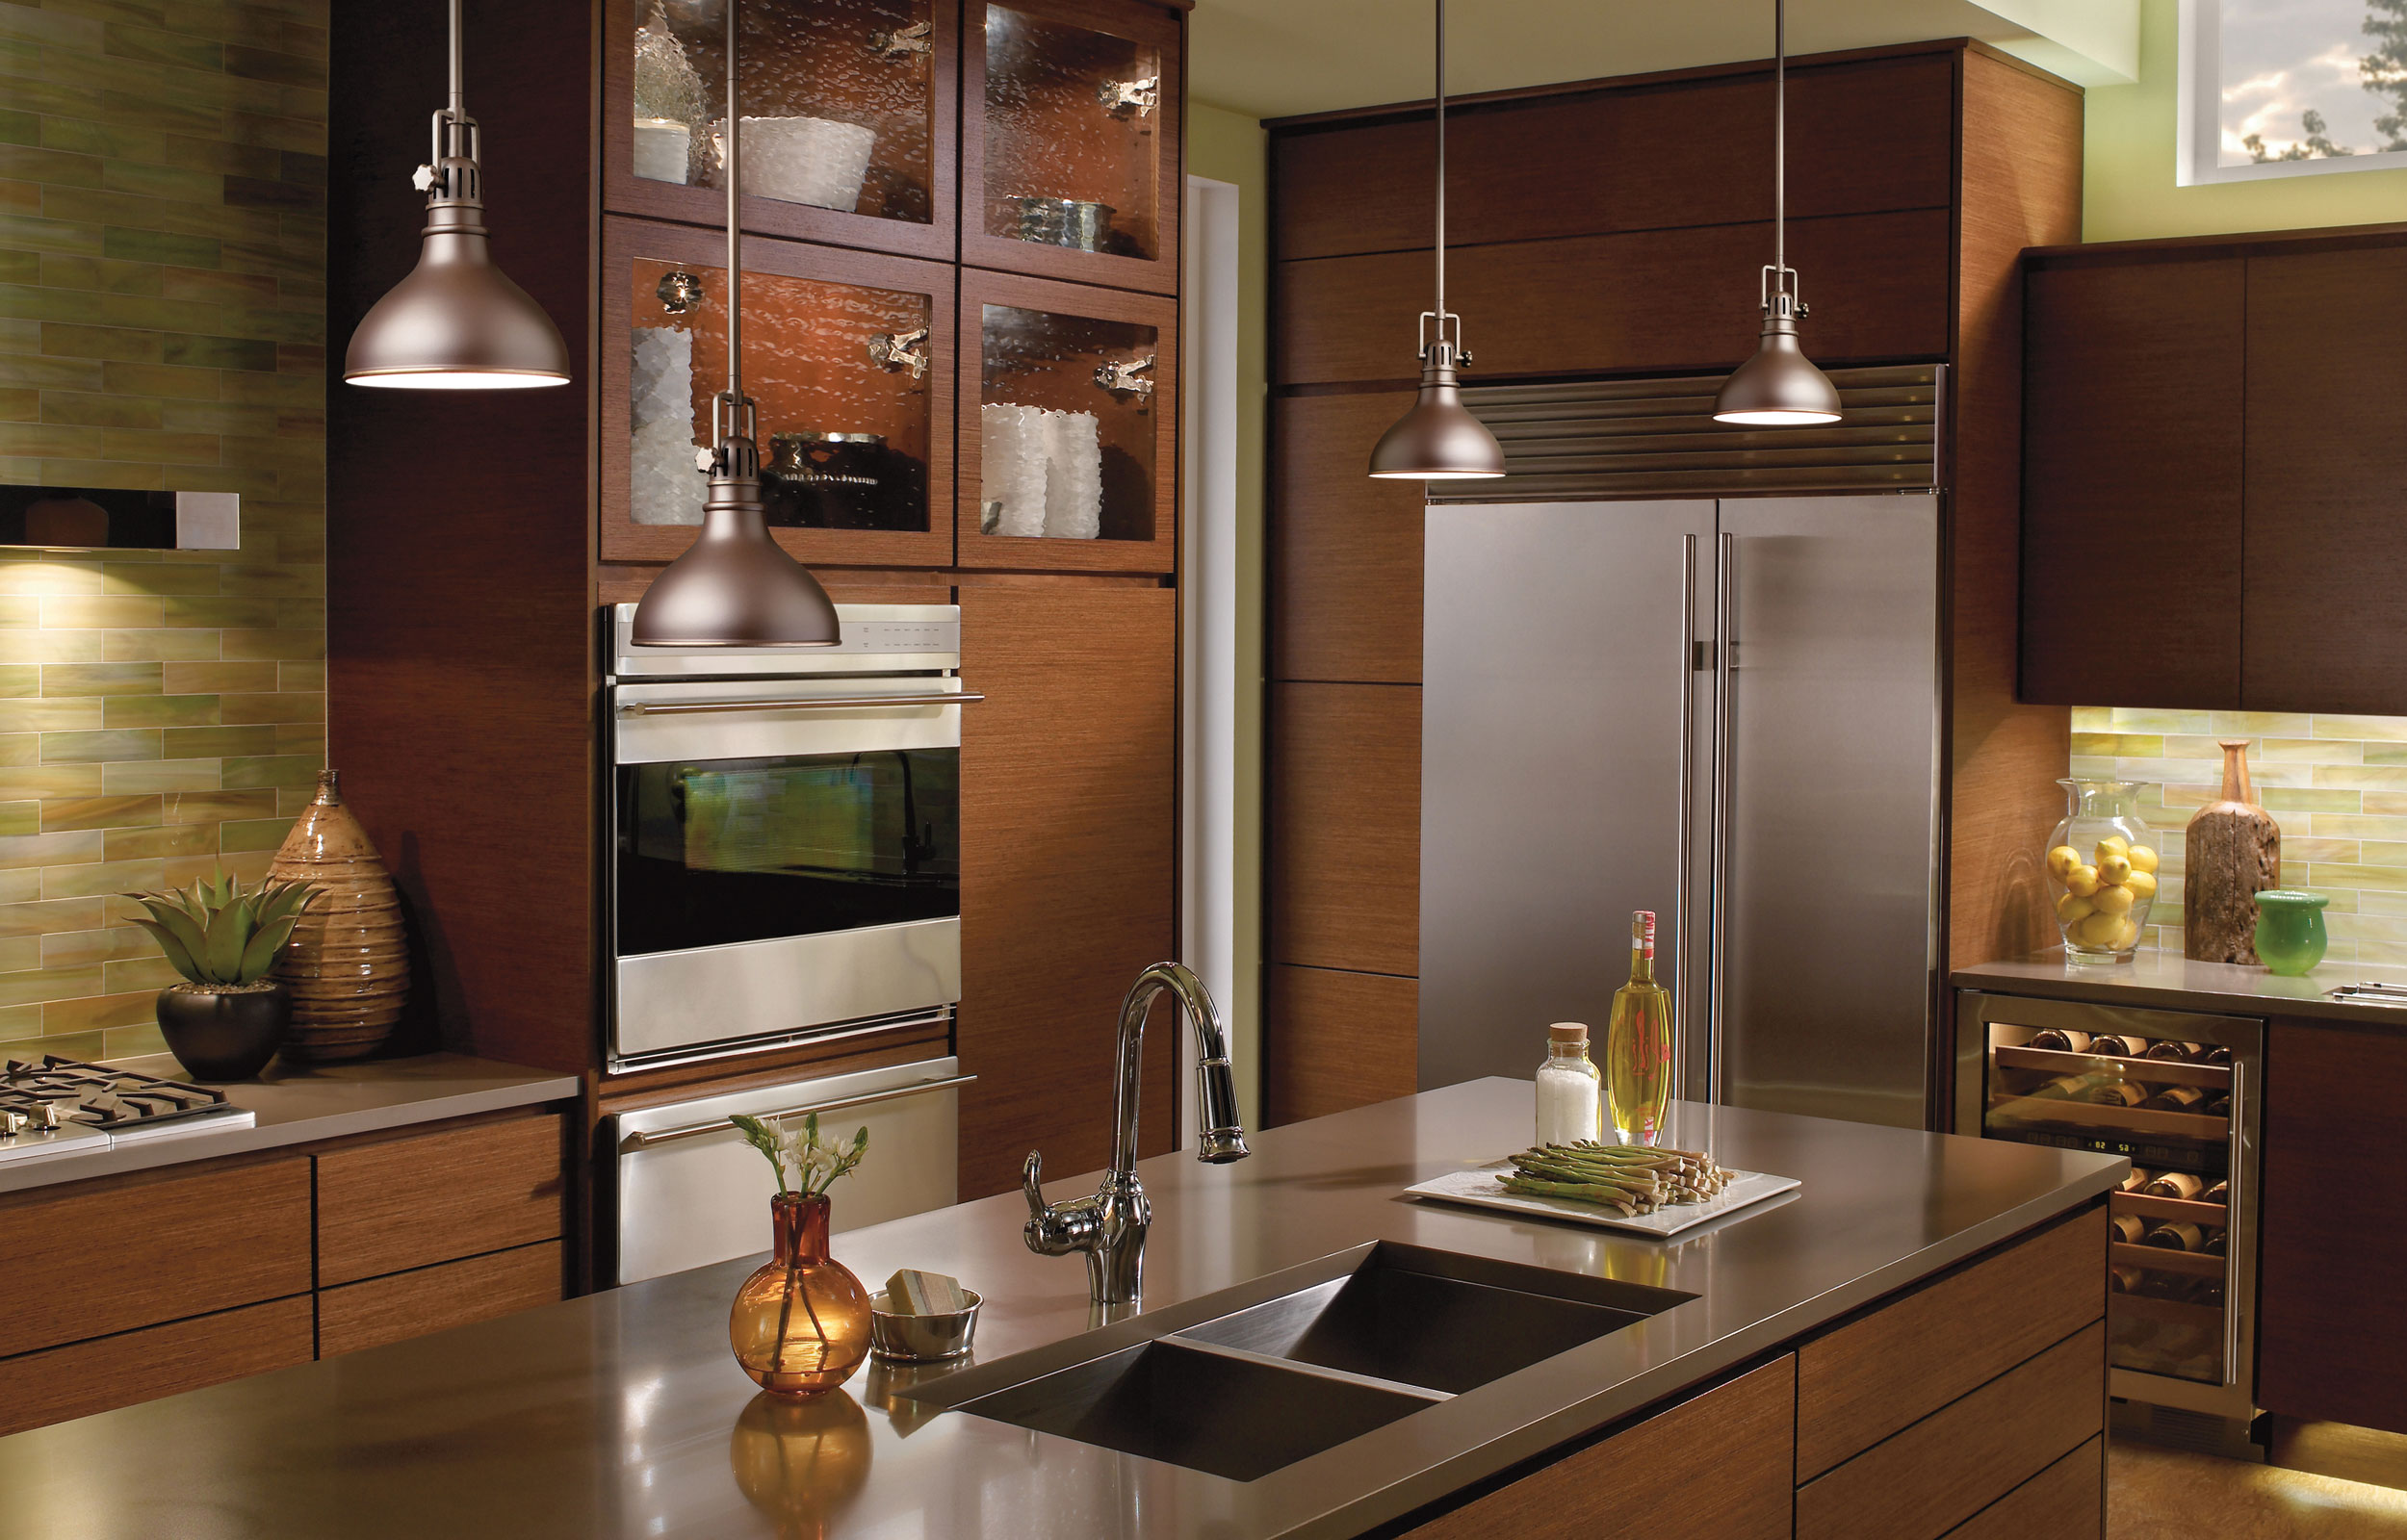 Home Depot Kitchen Lighting 2500 x 1600